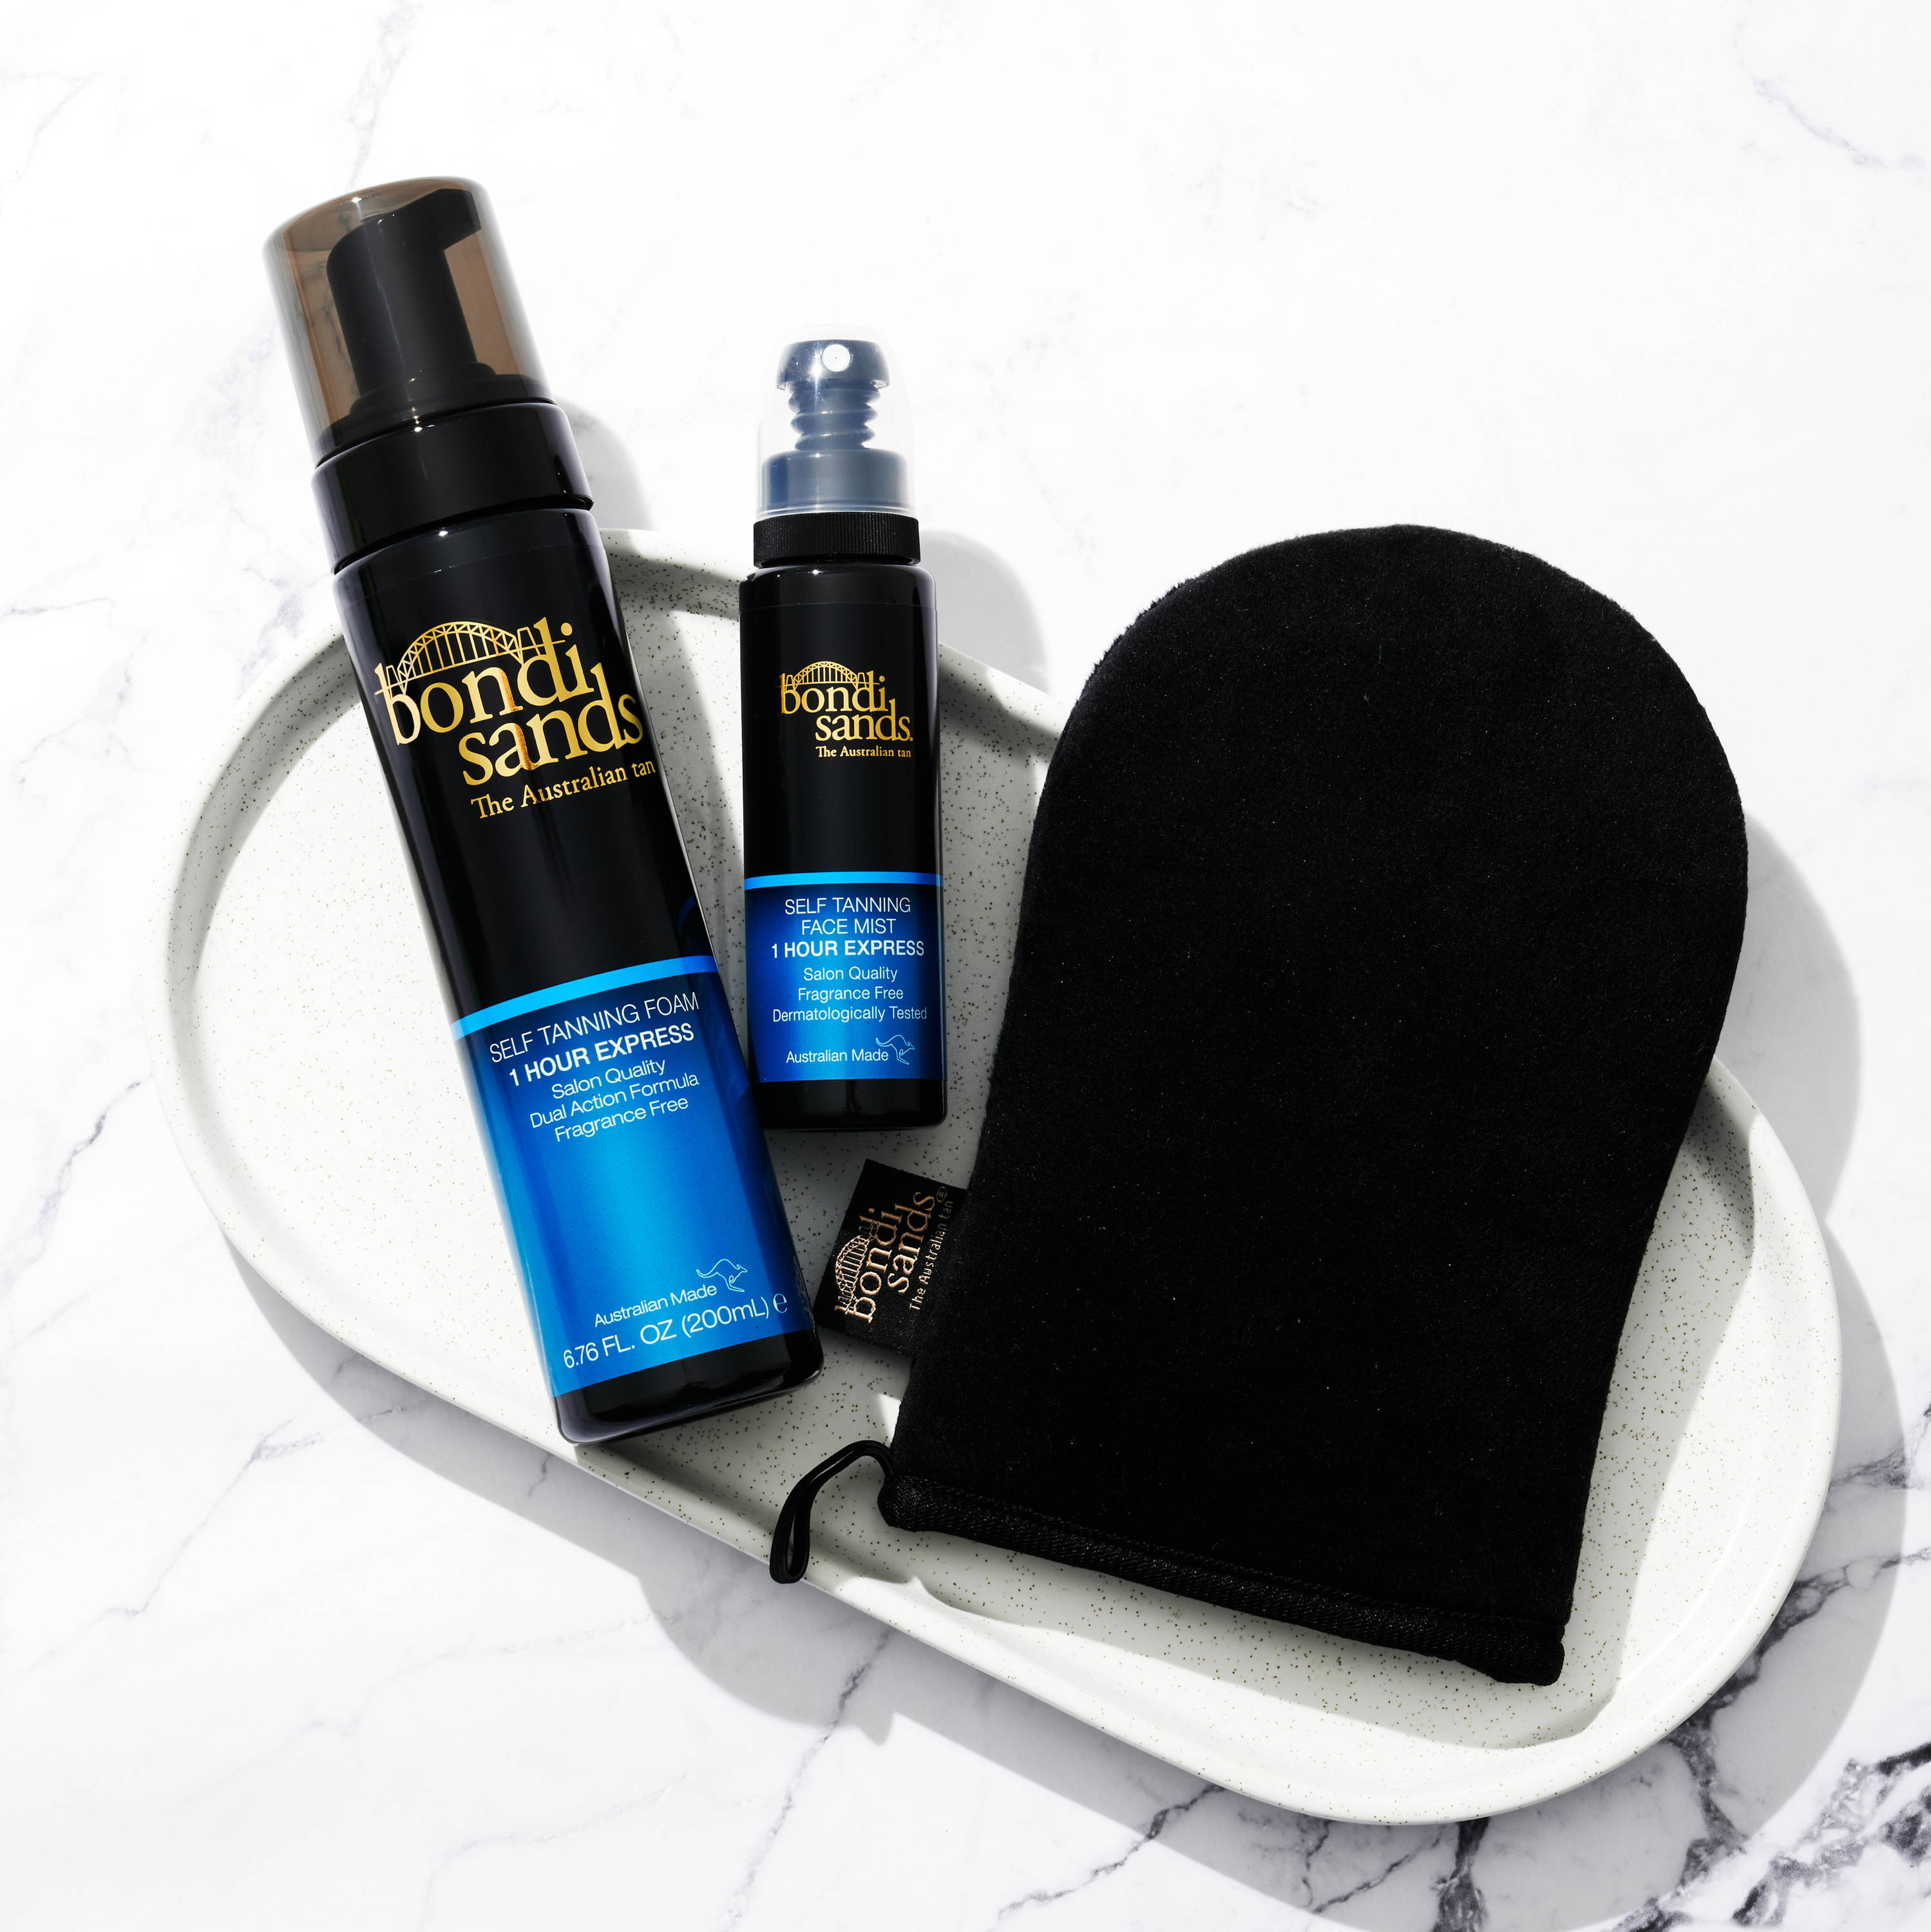 1 hour express self tanning foam and mist packaging with application mitt.